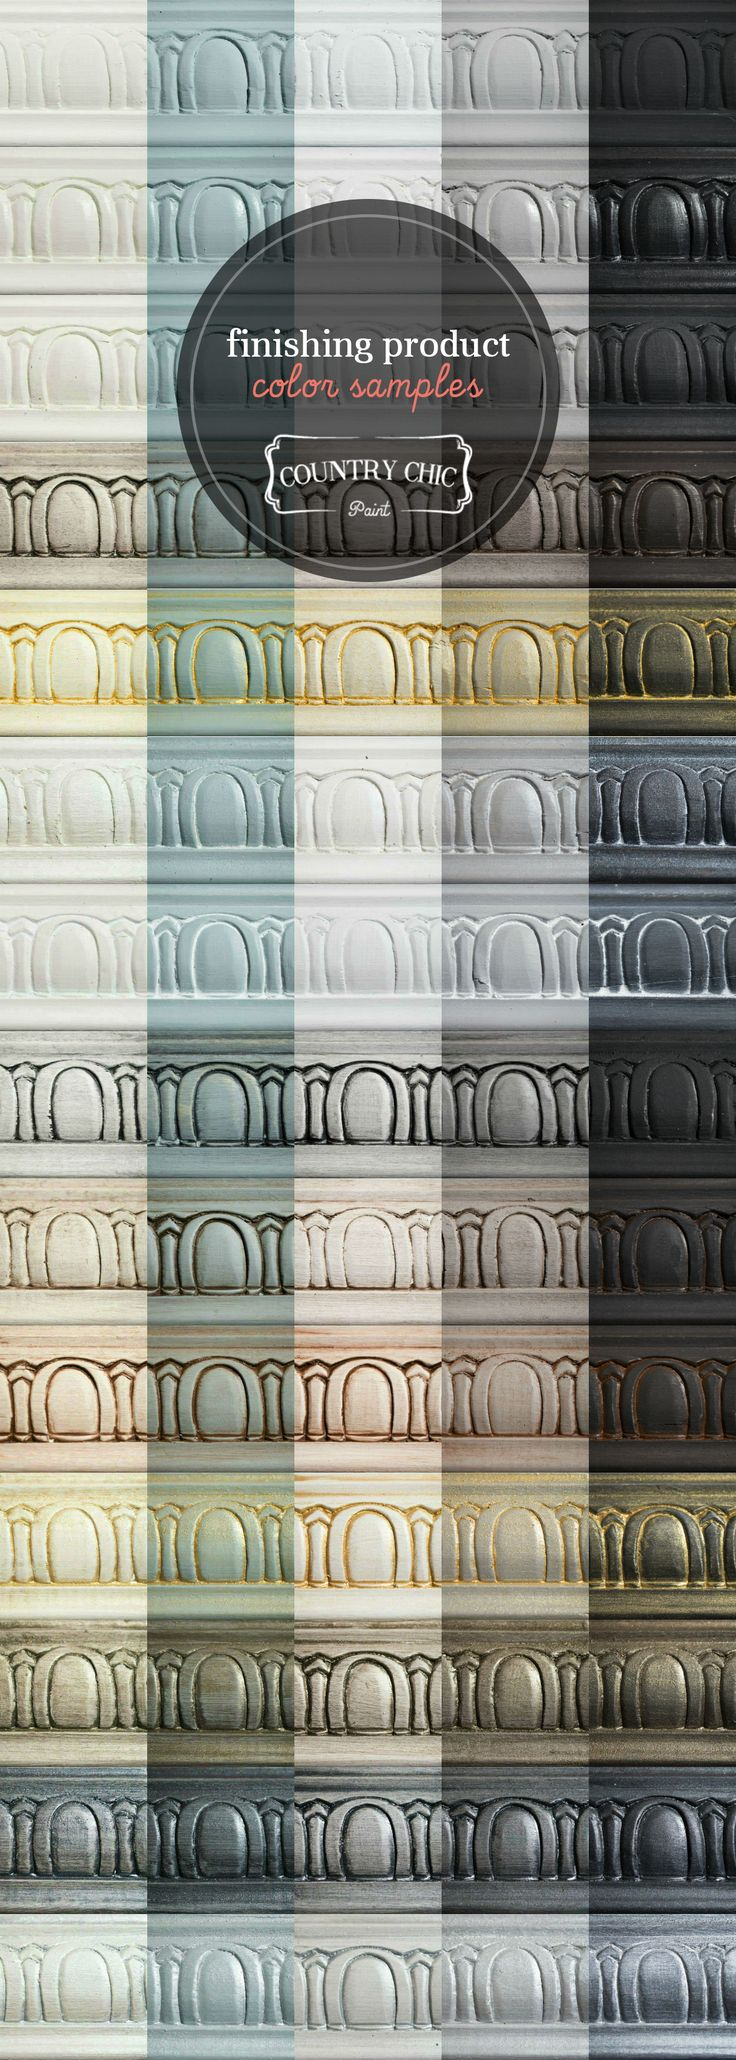 Need help choosing a furniture finishing product? Take a look at all of the beautiful options in the Country Chic Paint line from wax to glaze to metallic creams and more. #countrychicpaint - www.countrychicpaint.com/pages/sample-finishes